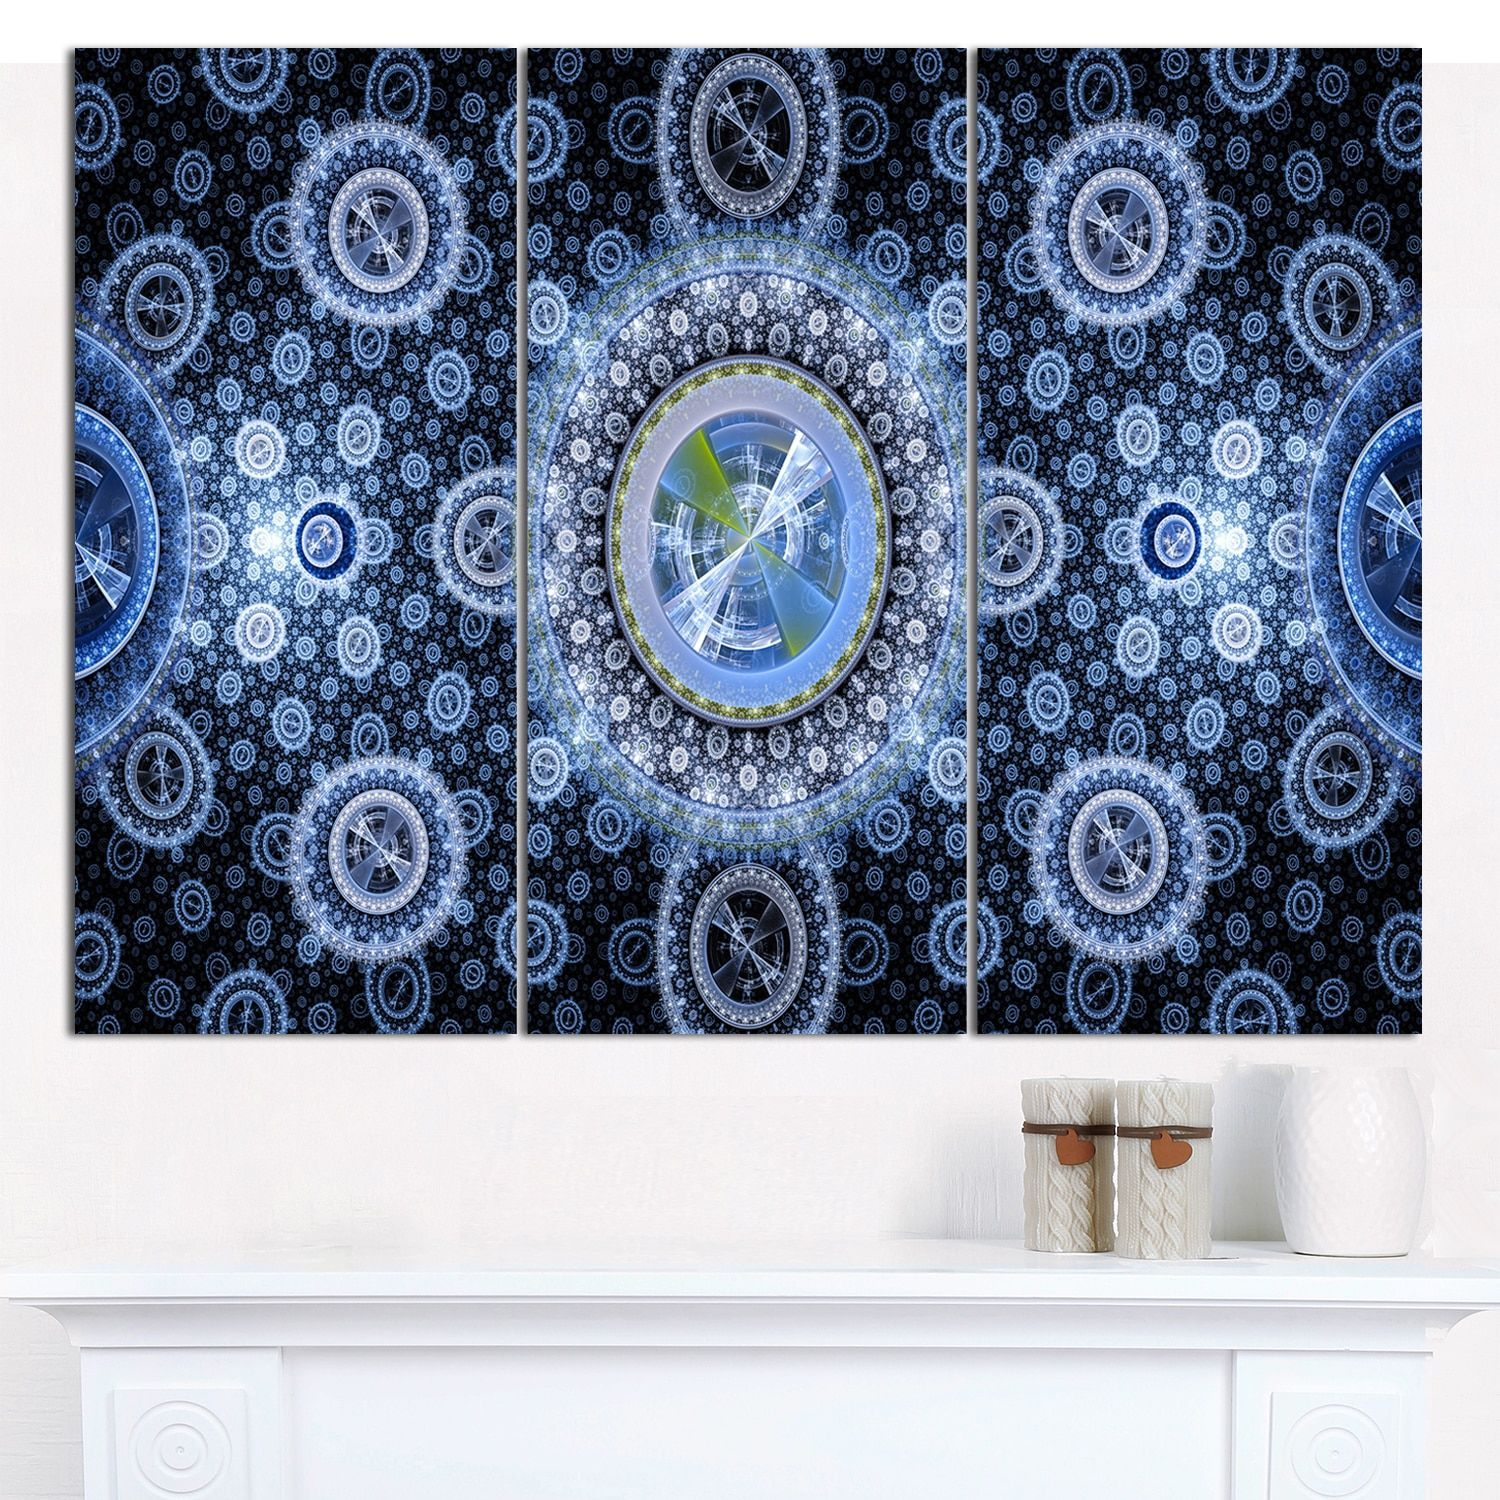 Shop For Designart Clear Blue Psychedelic Relaxing Art Abstract Wall